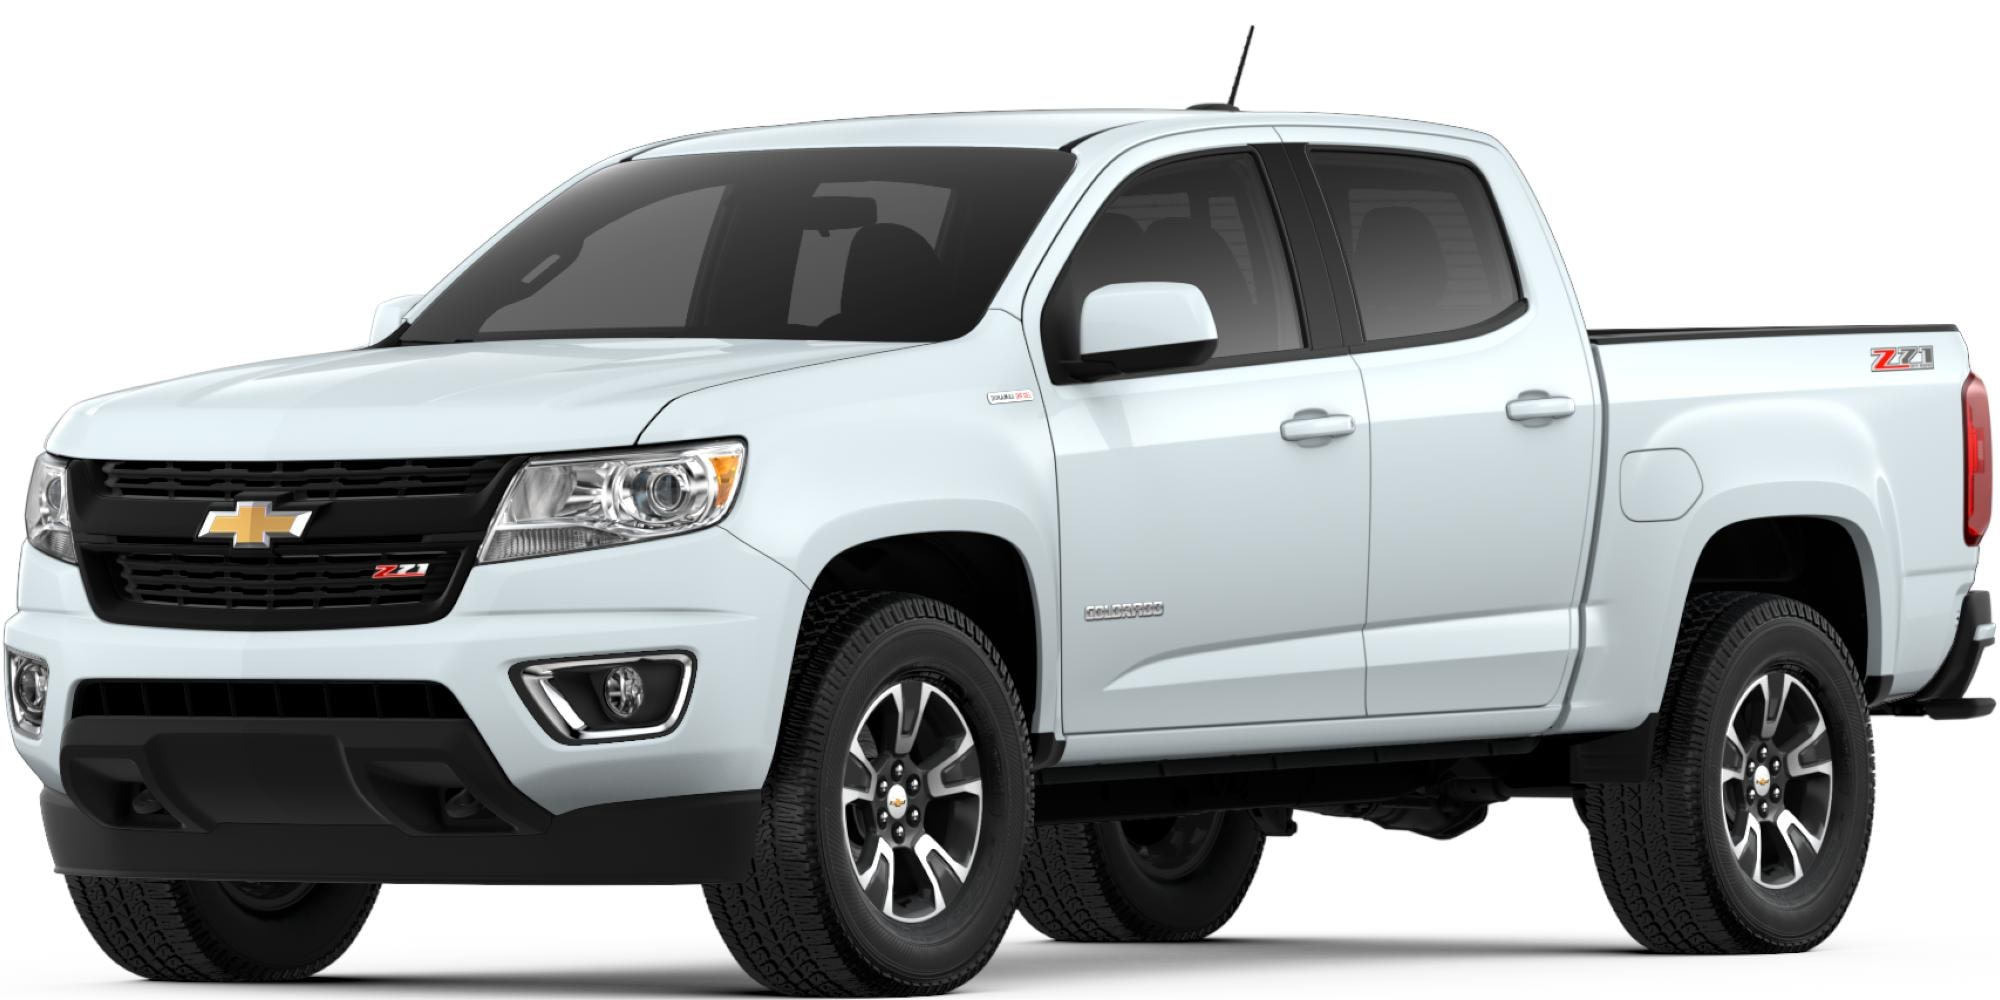 hight resolution of wiring diagram for chevy colorado 2 8 ltr wiring diagram load wiring diagram for chevy colorado 2 8 ltr